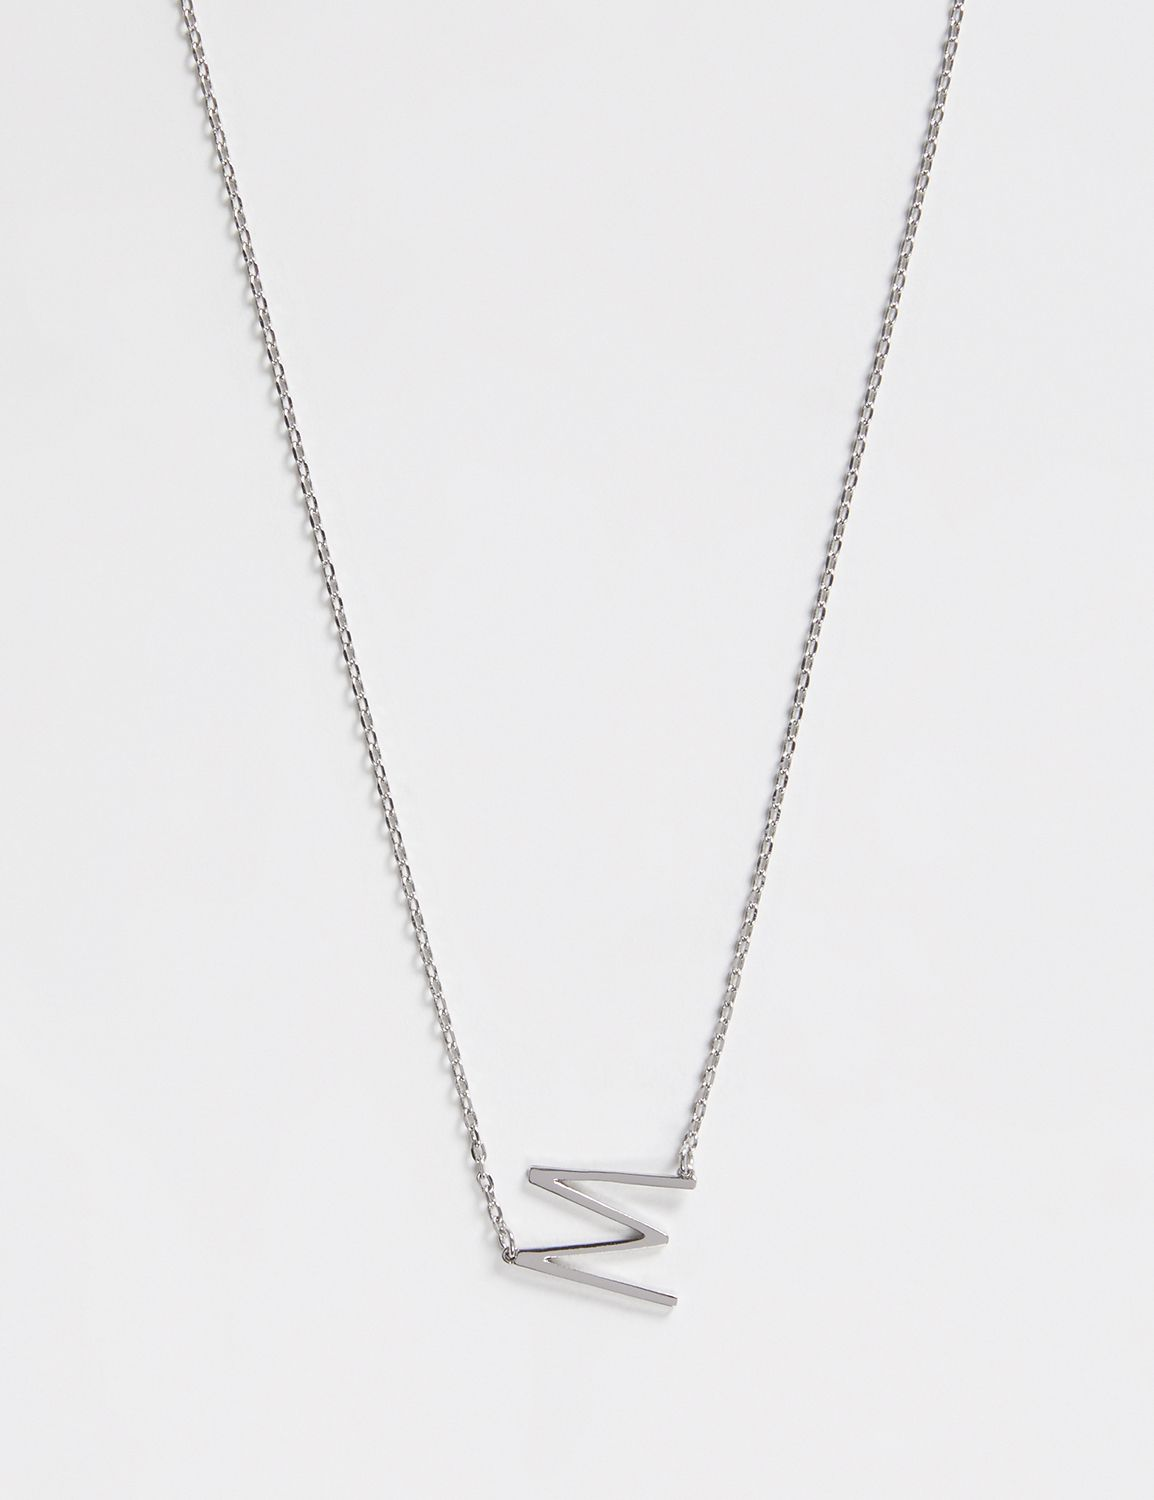 Lane Bryant Womens Initial Necklace ONESZ Silver M